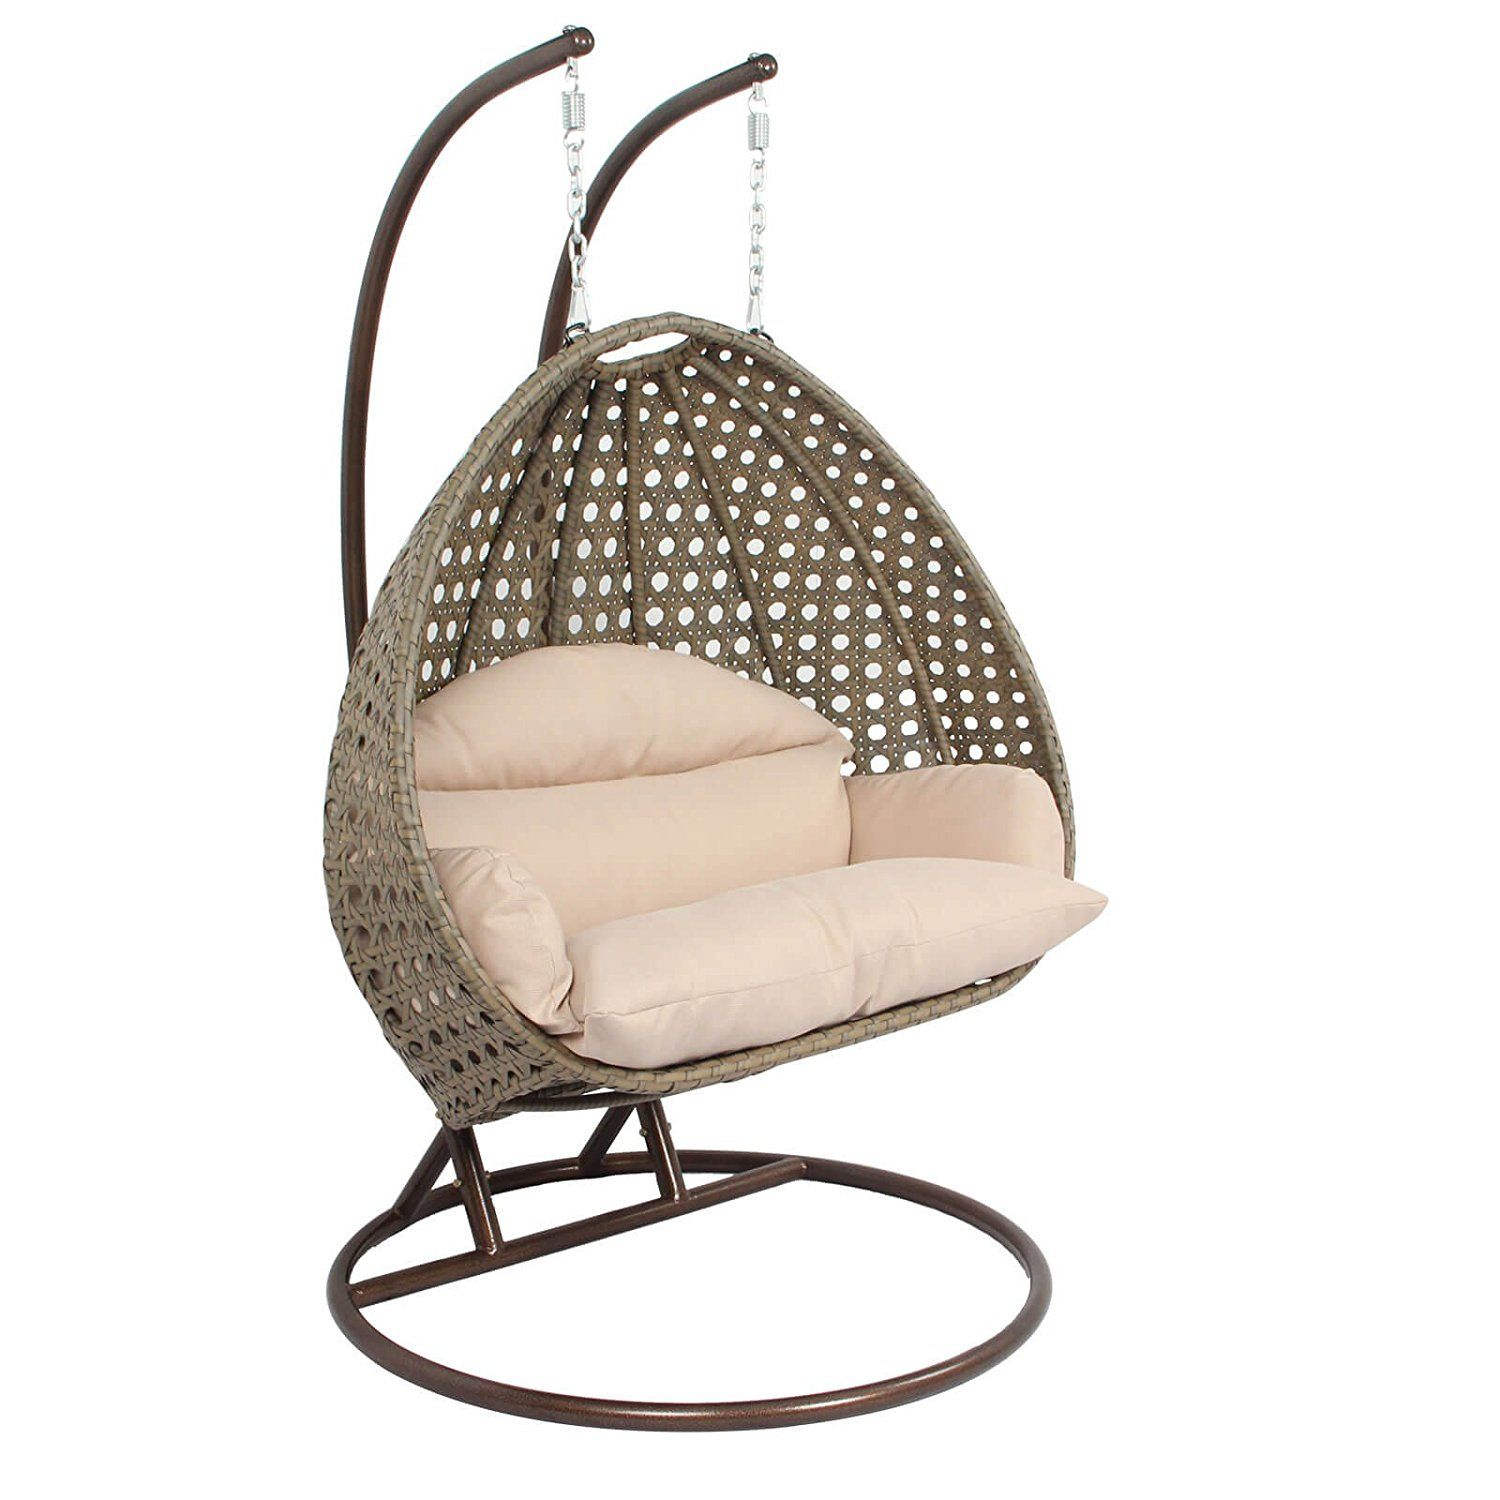 swing chair with stand amazon kit com luxury 2 person hanging egg by island gale outdoor patio furniture hammock w cushion max